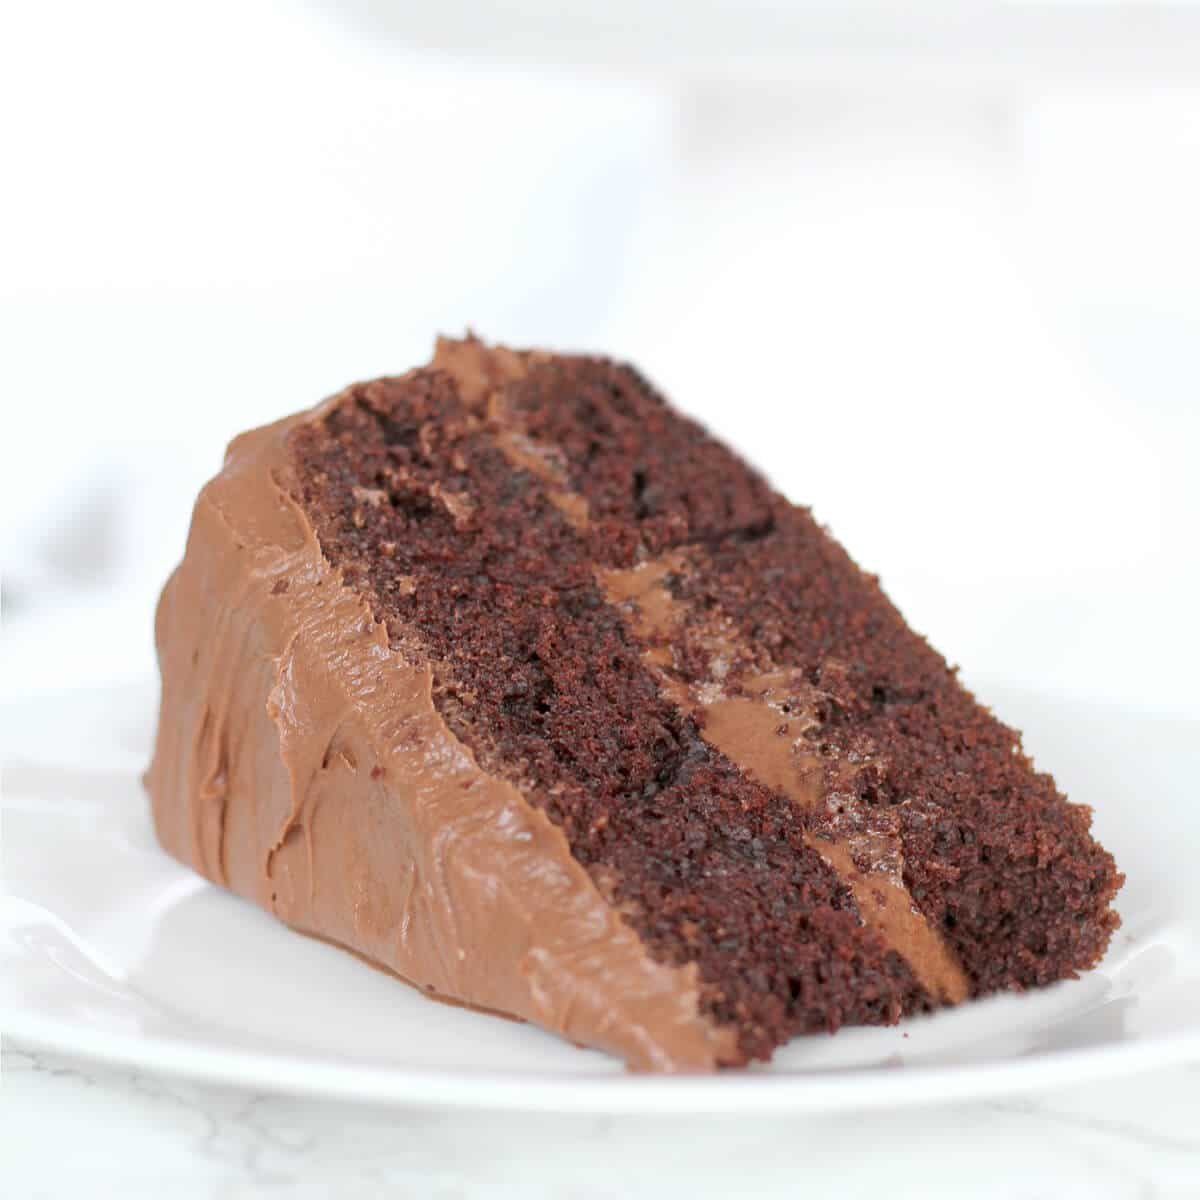 Hershey's Chocolate Cake is absolutely the best chocolate cake there is! Cocoa gives it a rich chocolate flavor and it's never dry!